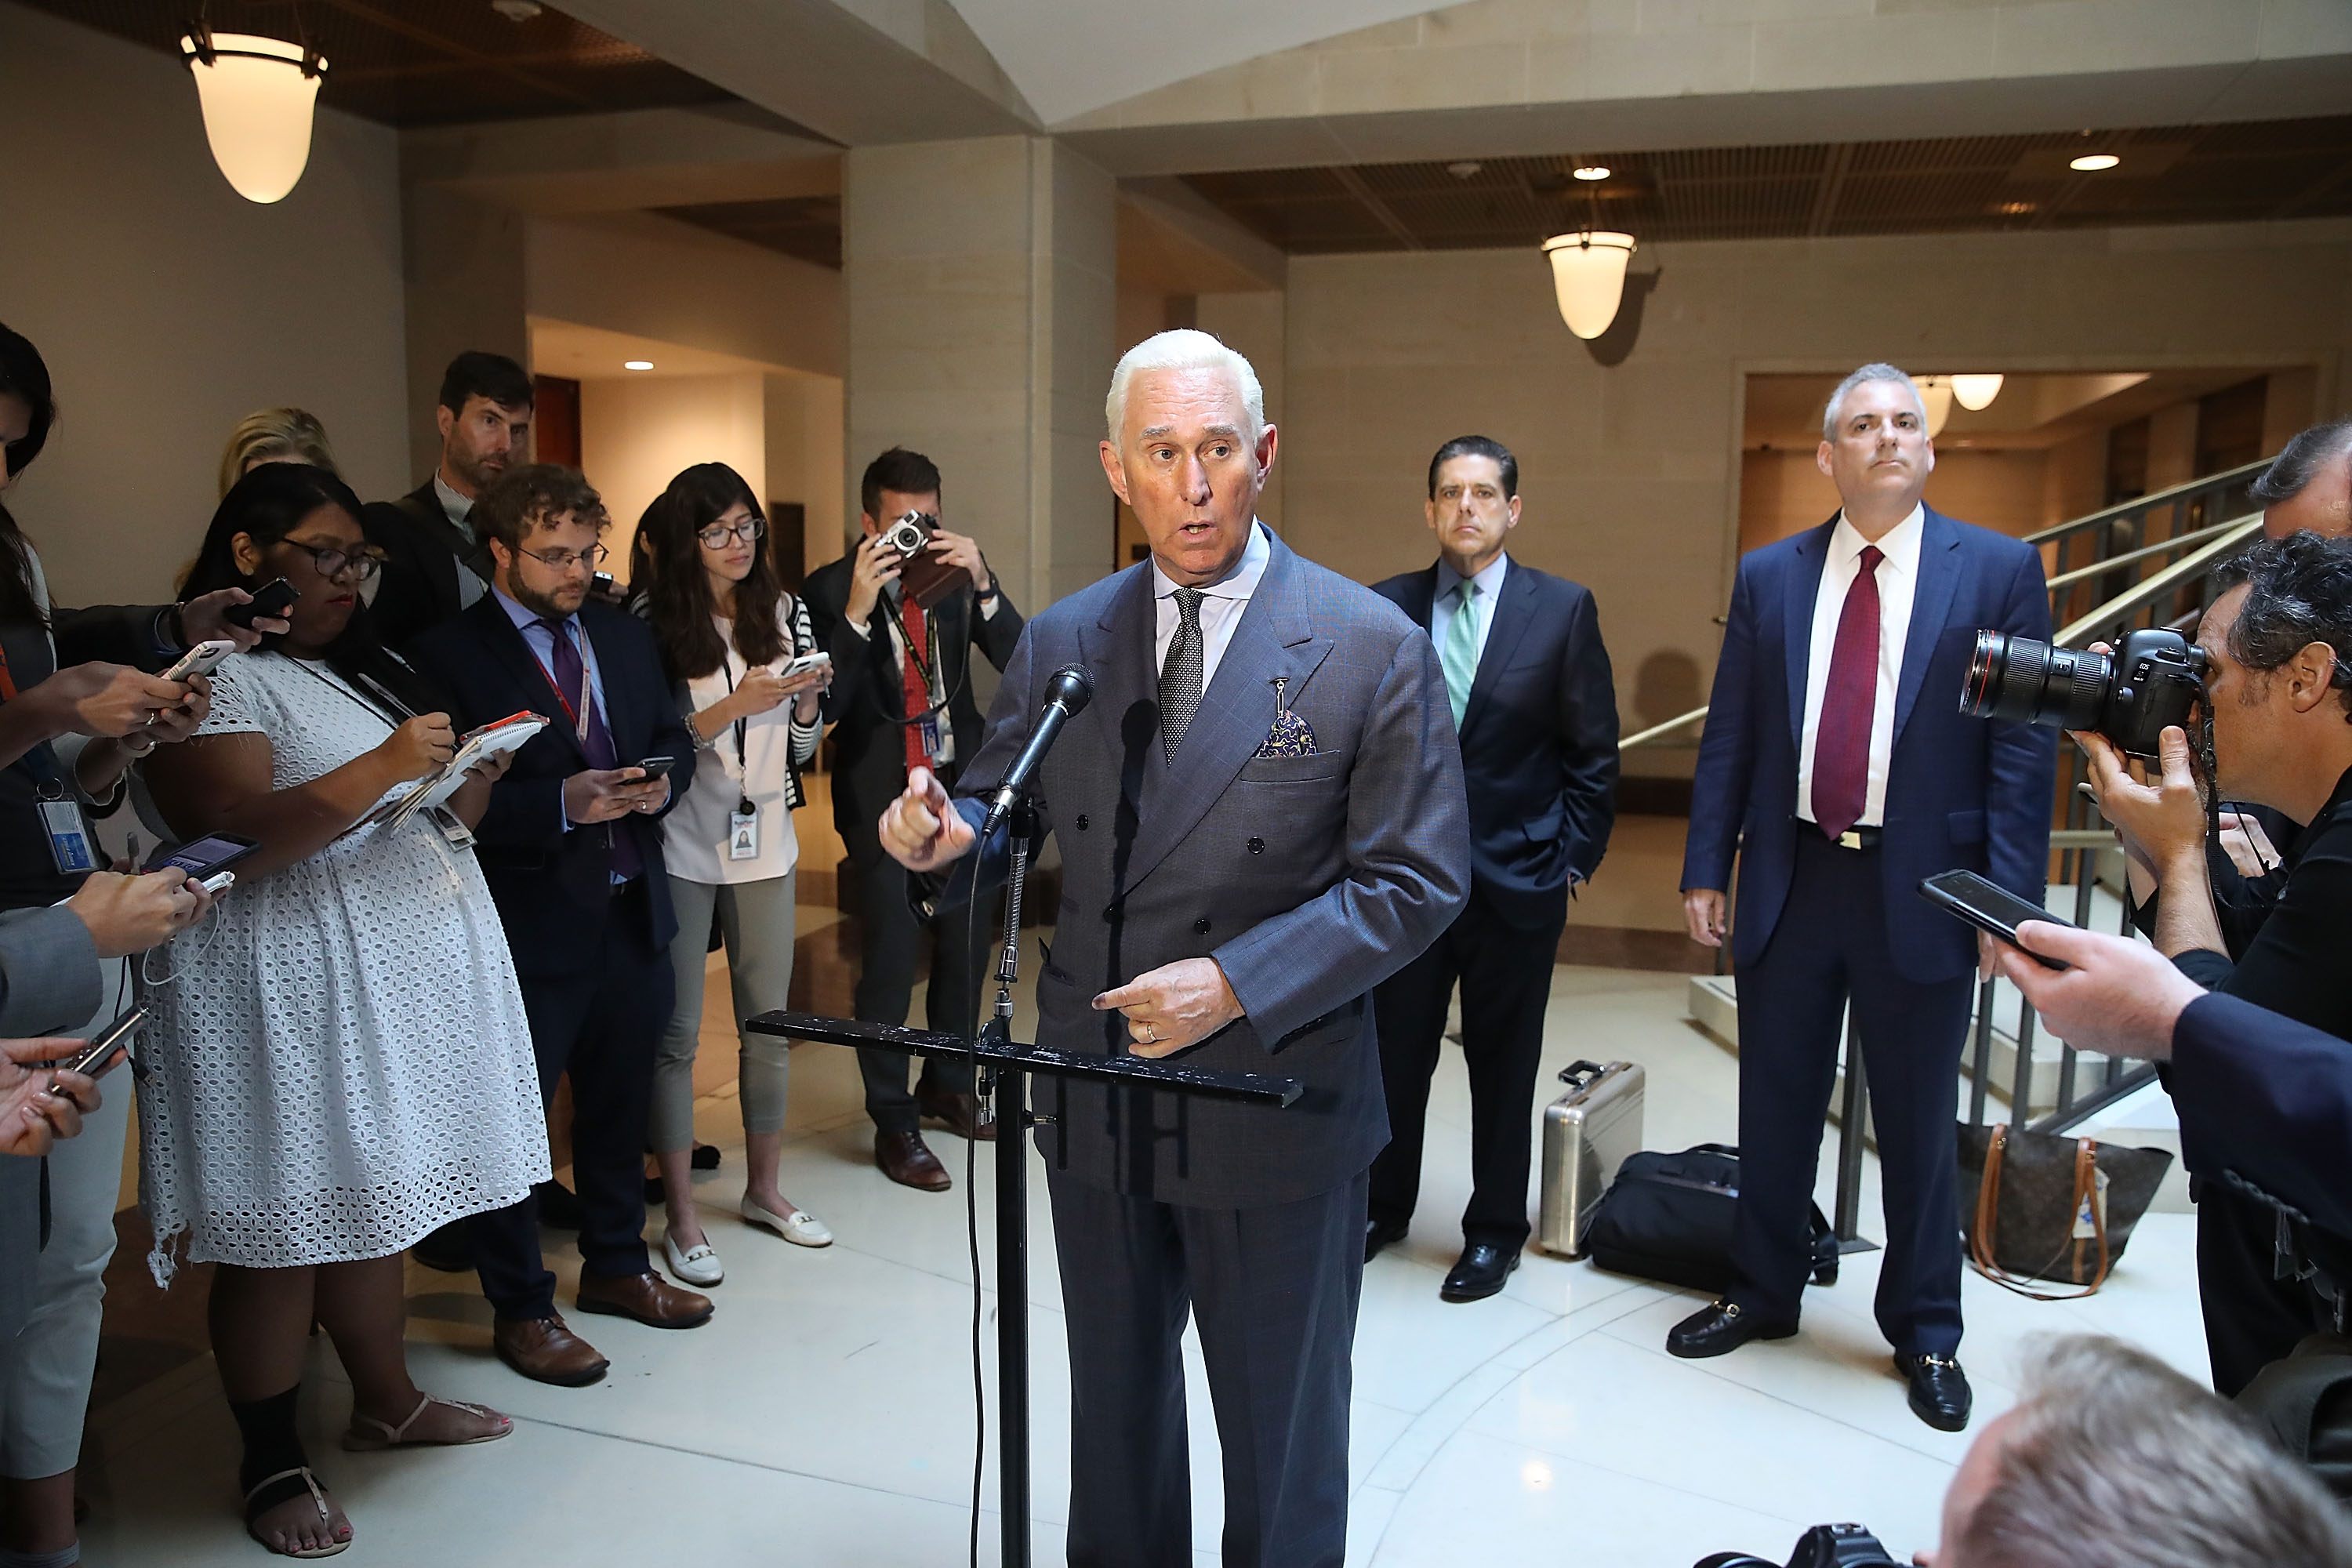 US political consultant Roger Stone speaks to reporters at the US Capitol in Washington, US, September 26, 2017. — AFP pic